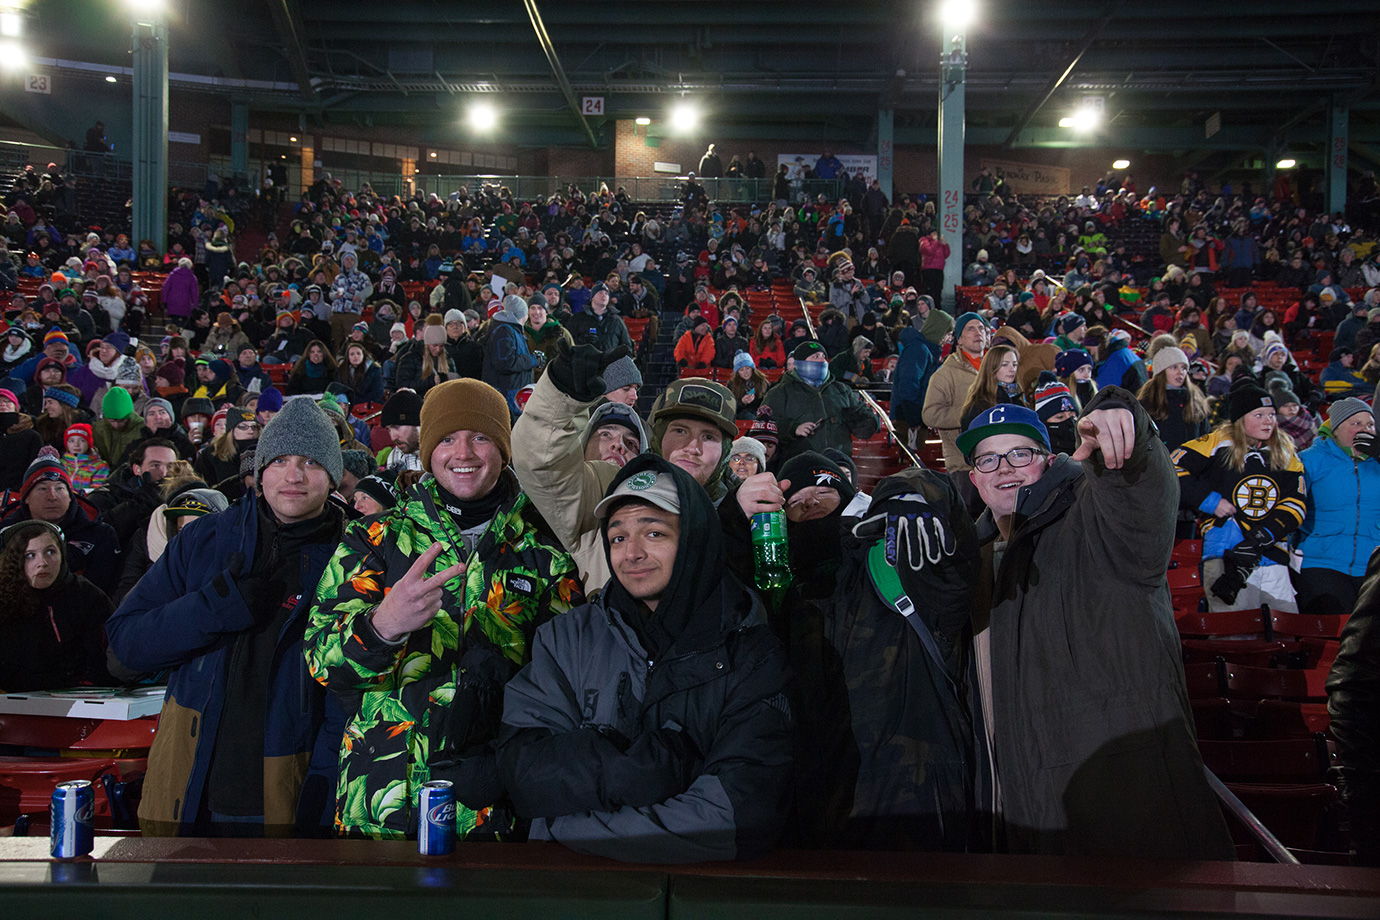 The Boston faithful fill the center of the stadium in anticipation of the skiing Big Air final.